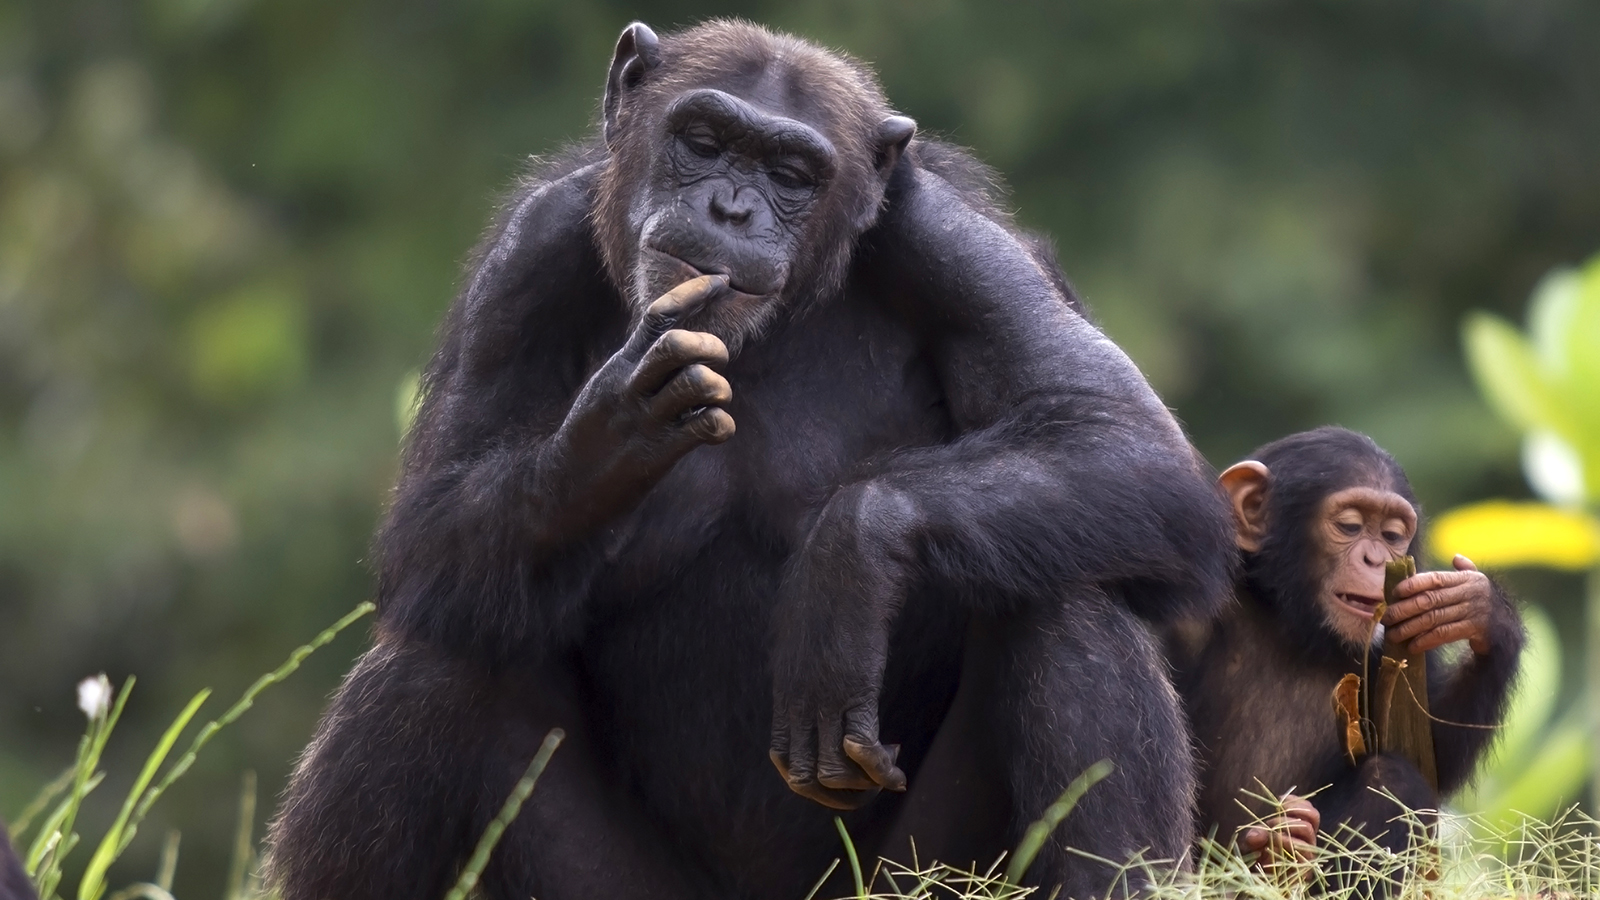 Chimpanzee The Humble Animals | Deadly Animals